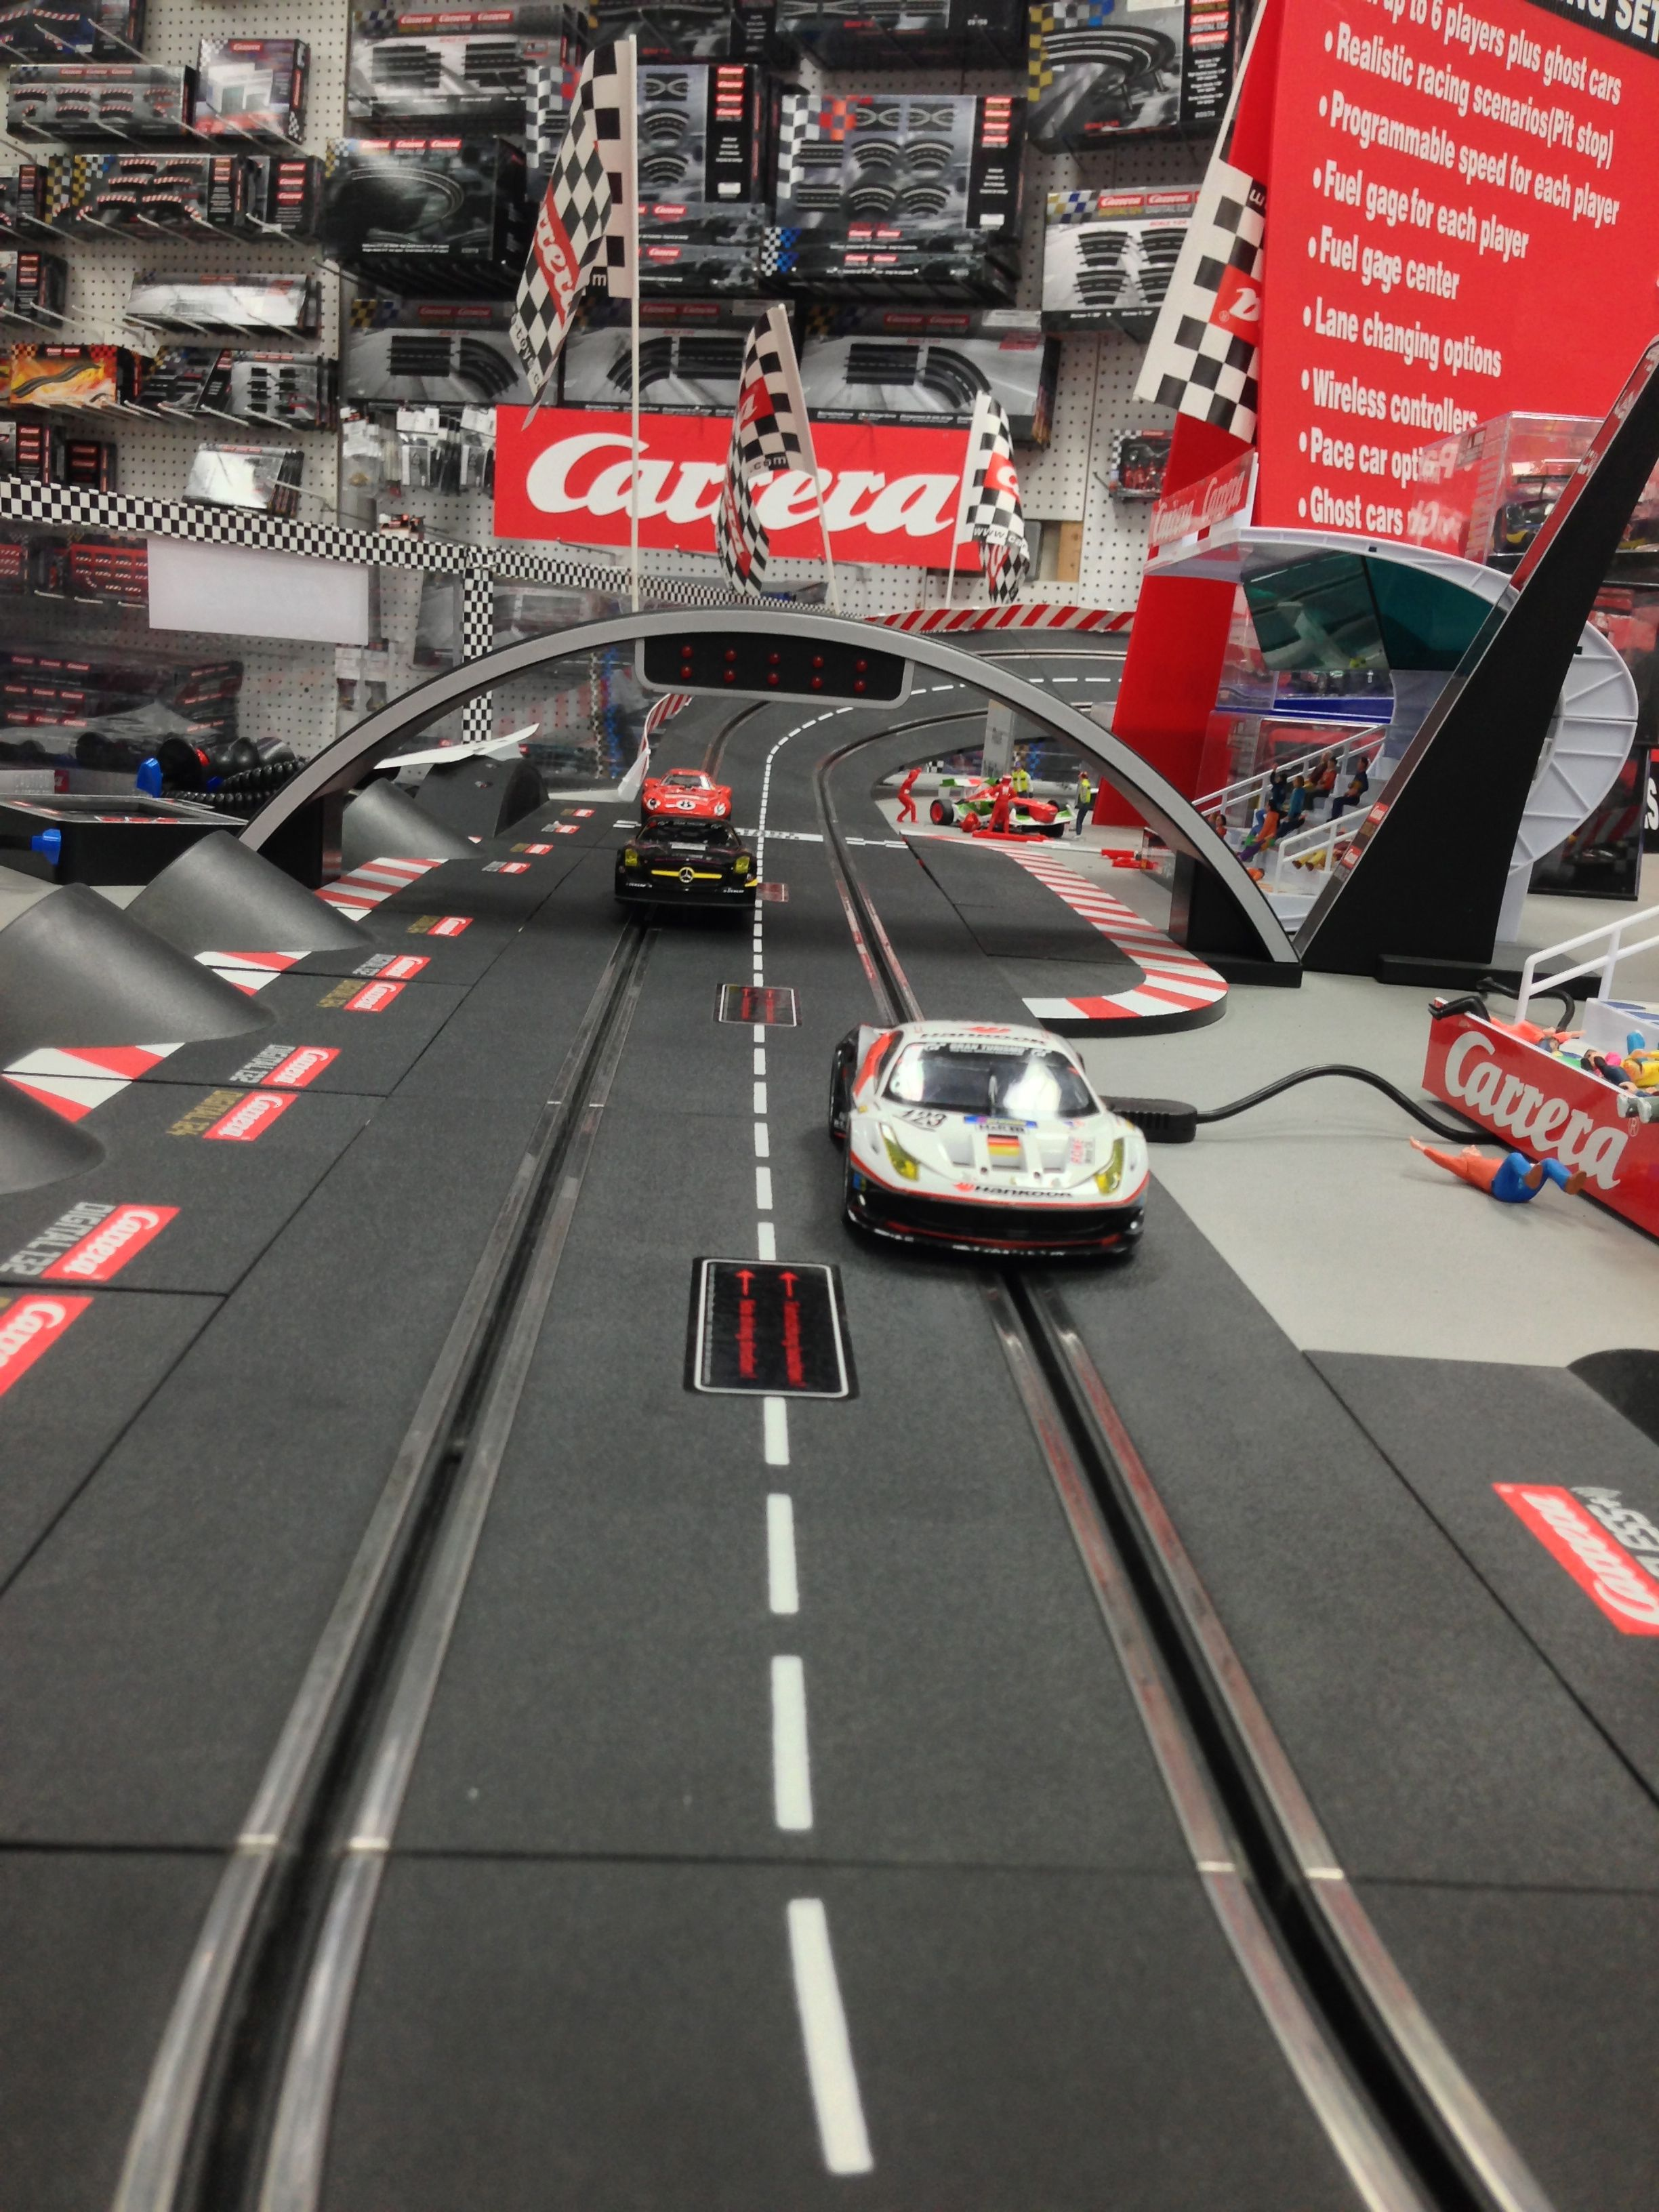 Carrera Slot Cars in the store at Big Boys with Cool Toys